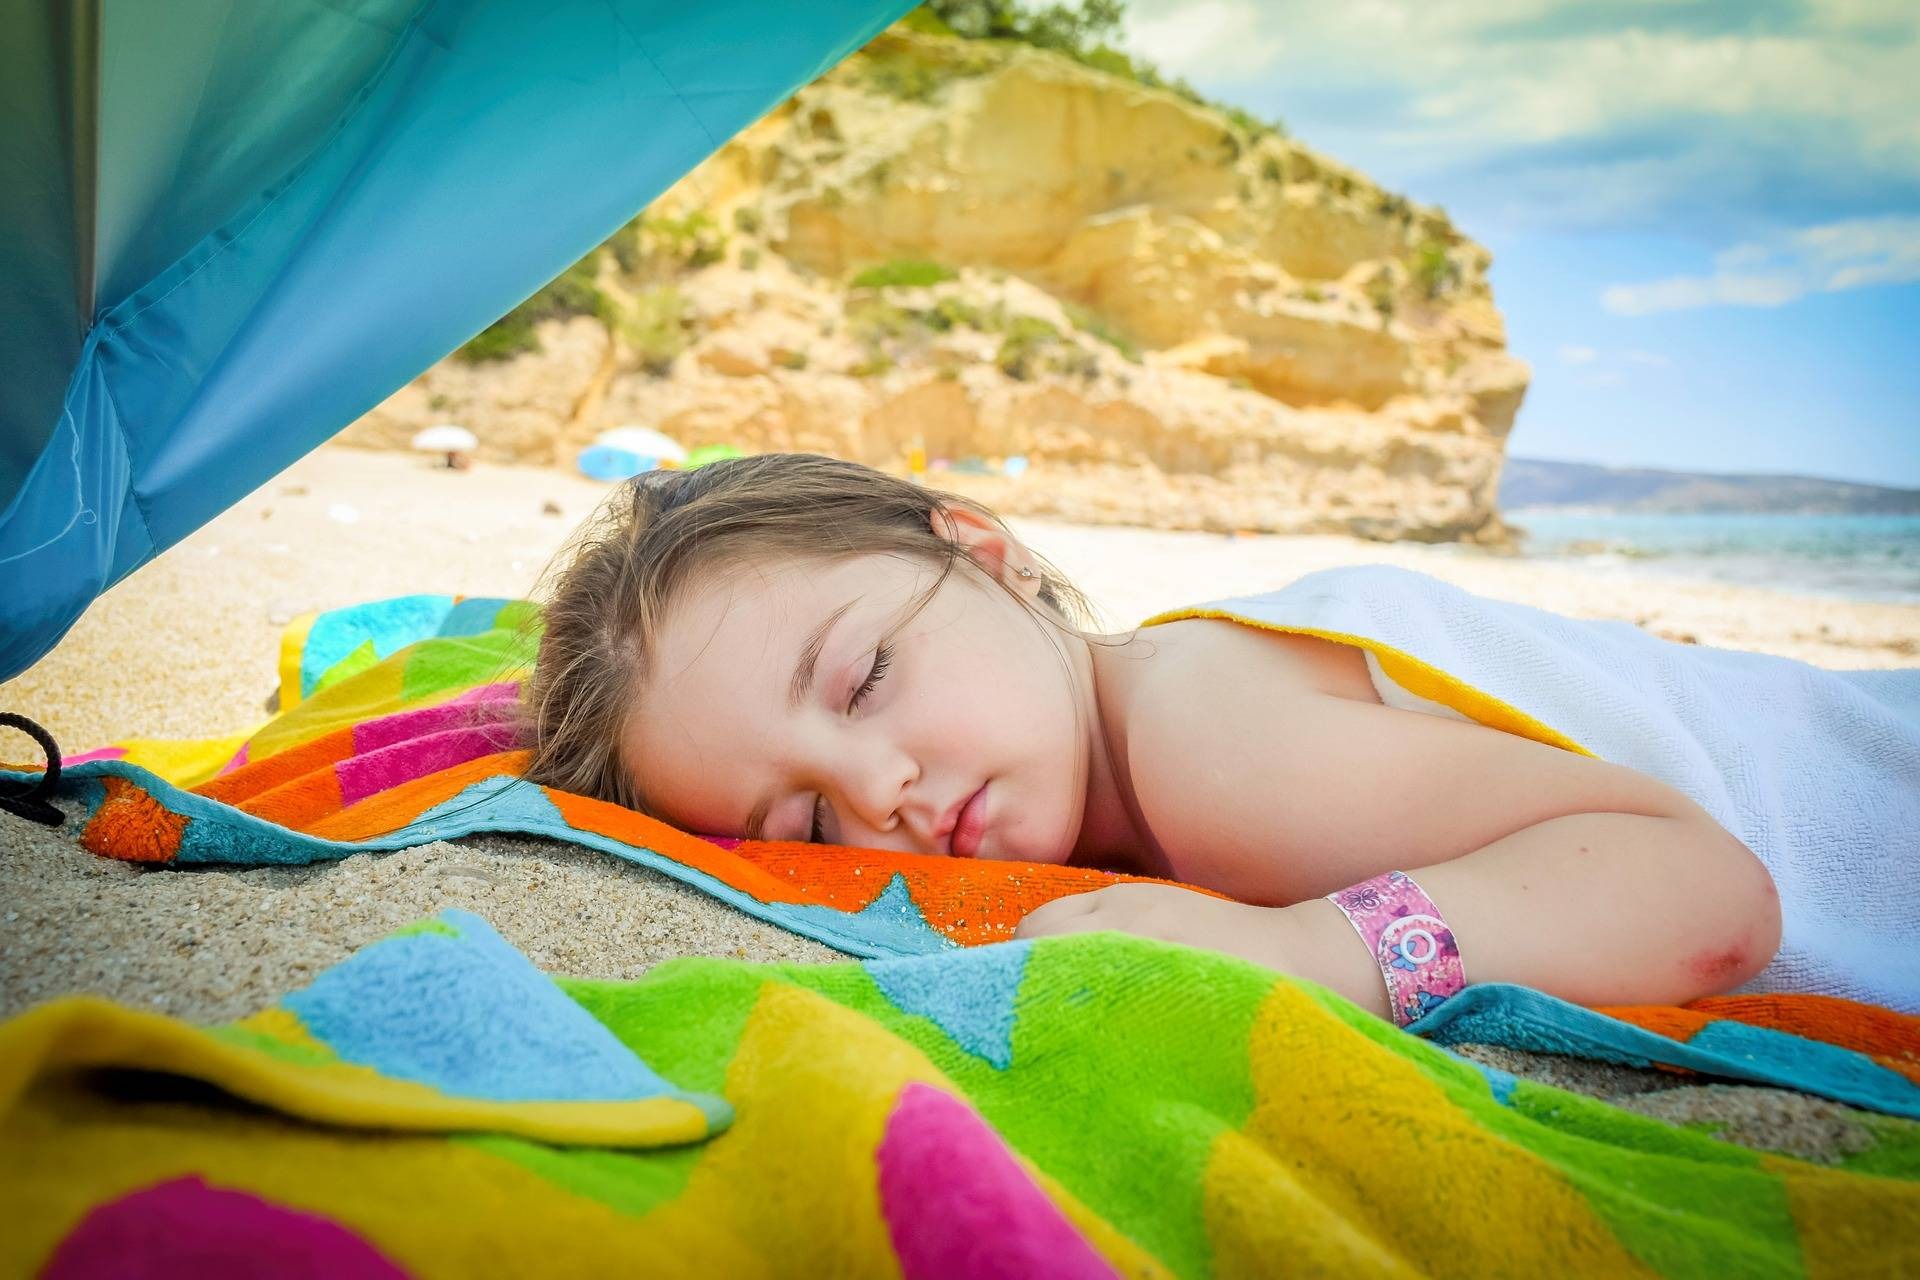 STAYCATION: 5 WAYS TO EMBRACE YOUR NEXT HOLIDAY AT HOME